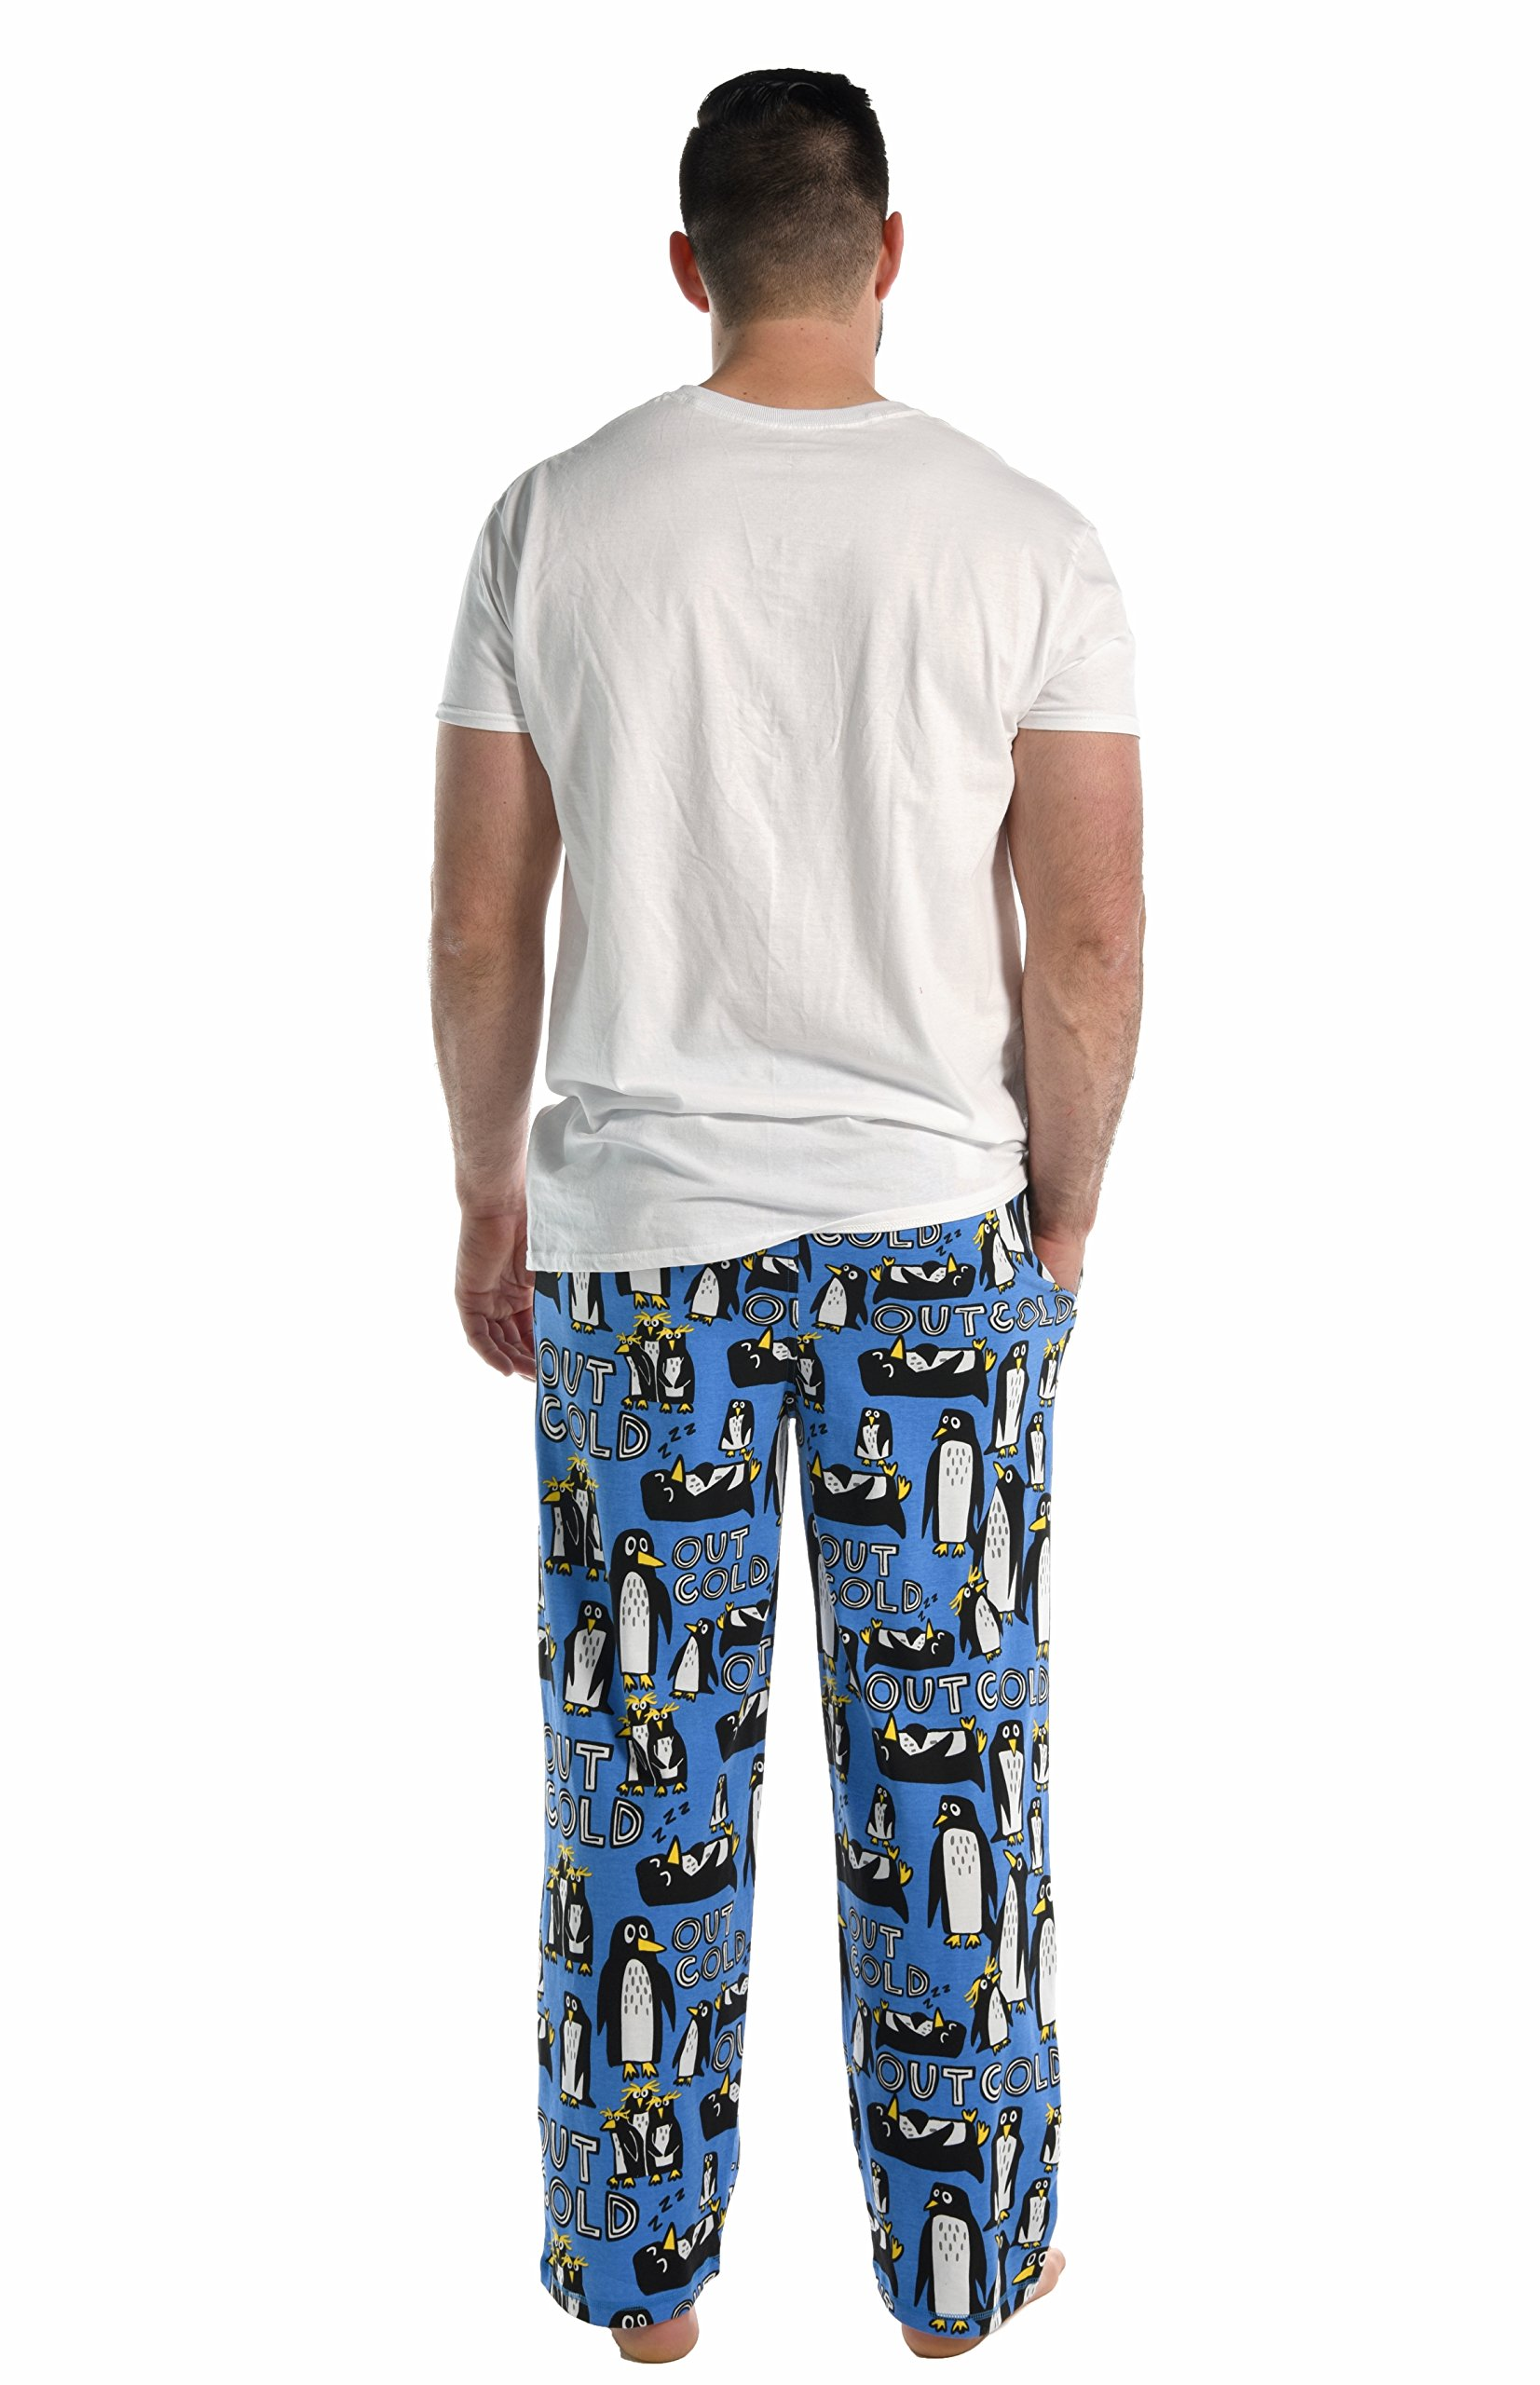 Out Cold Men's Pajama Pants Bottom by LazyOne | Pajama Bottom for Men (Large) by Lazy One (Image #4)